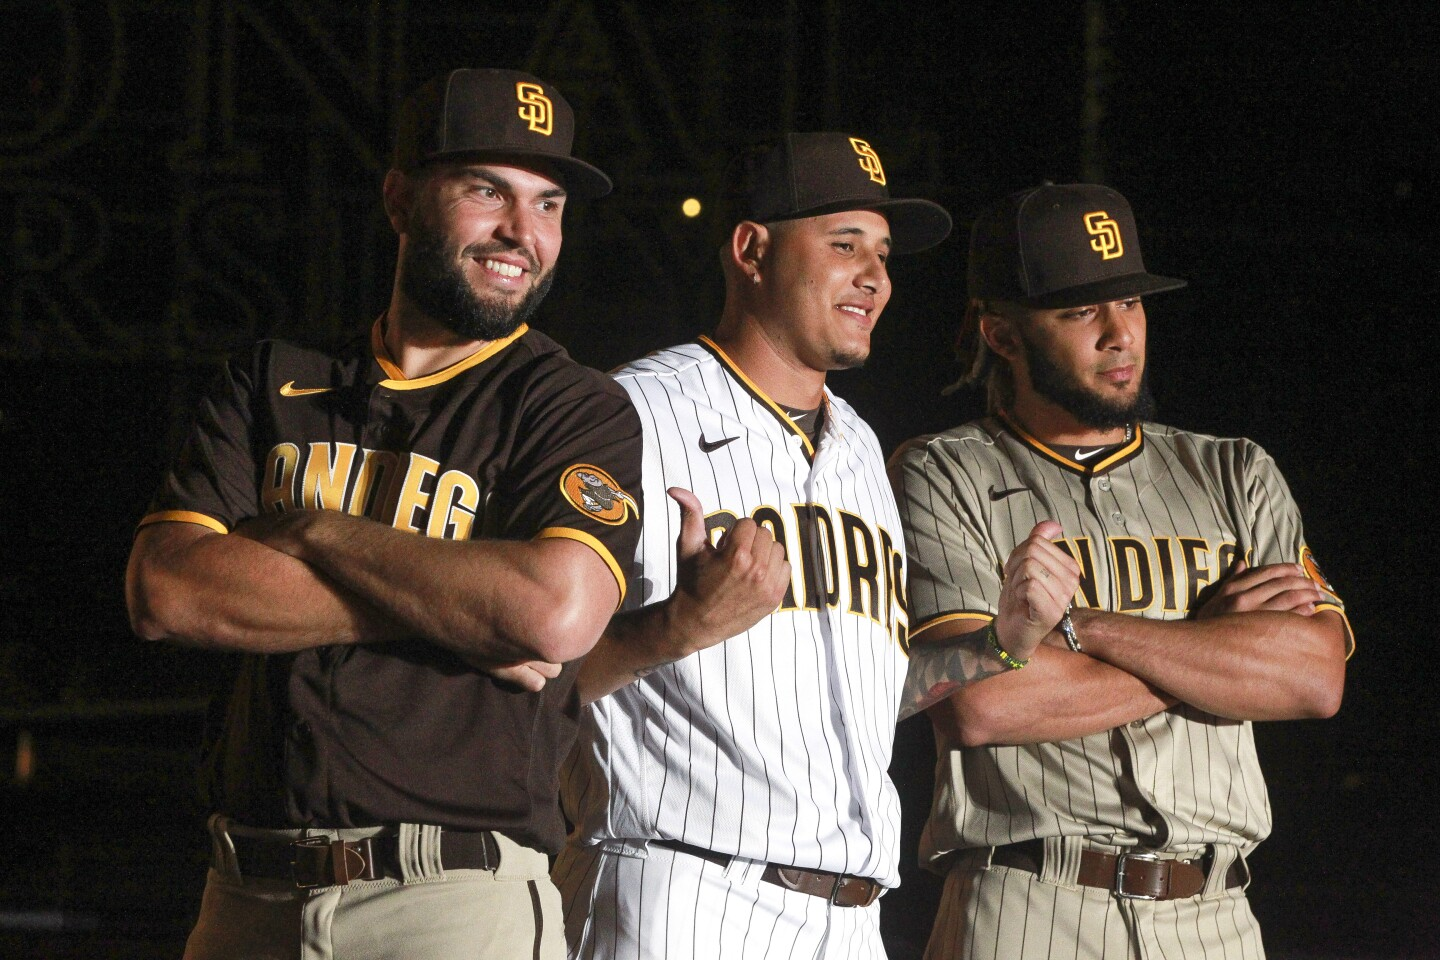 The Padres' Eric Hosmer, left, Manny Machado, center, and Fernando Tatis Jr. wear the Padres new uniforms during the Padres uniform unveiling event at Petco Park on Saturday, November 9, 2019 in San Diego, California.